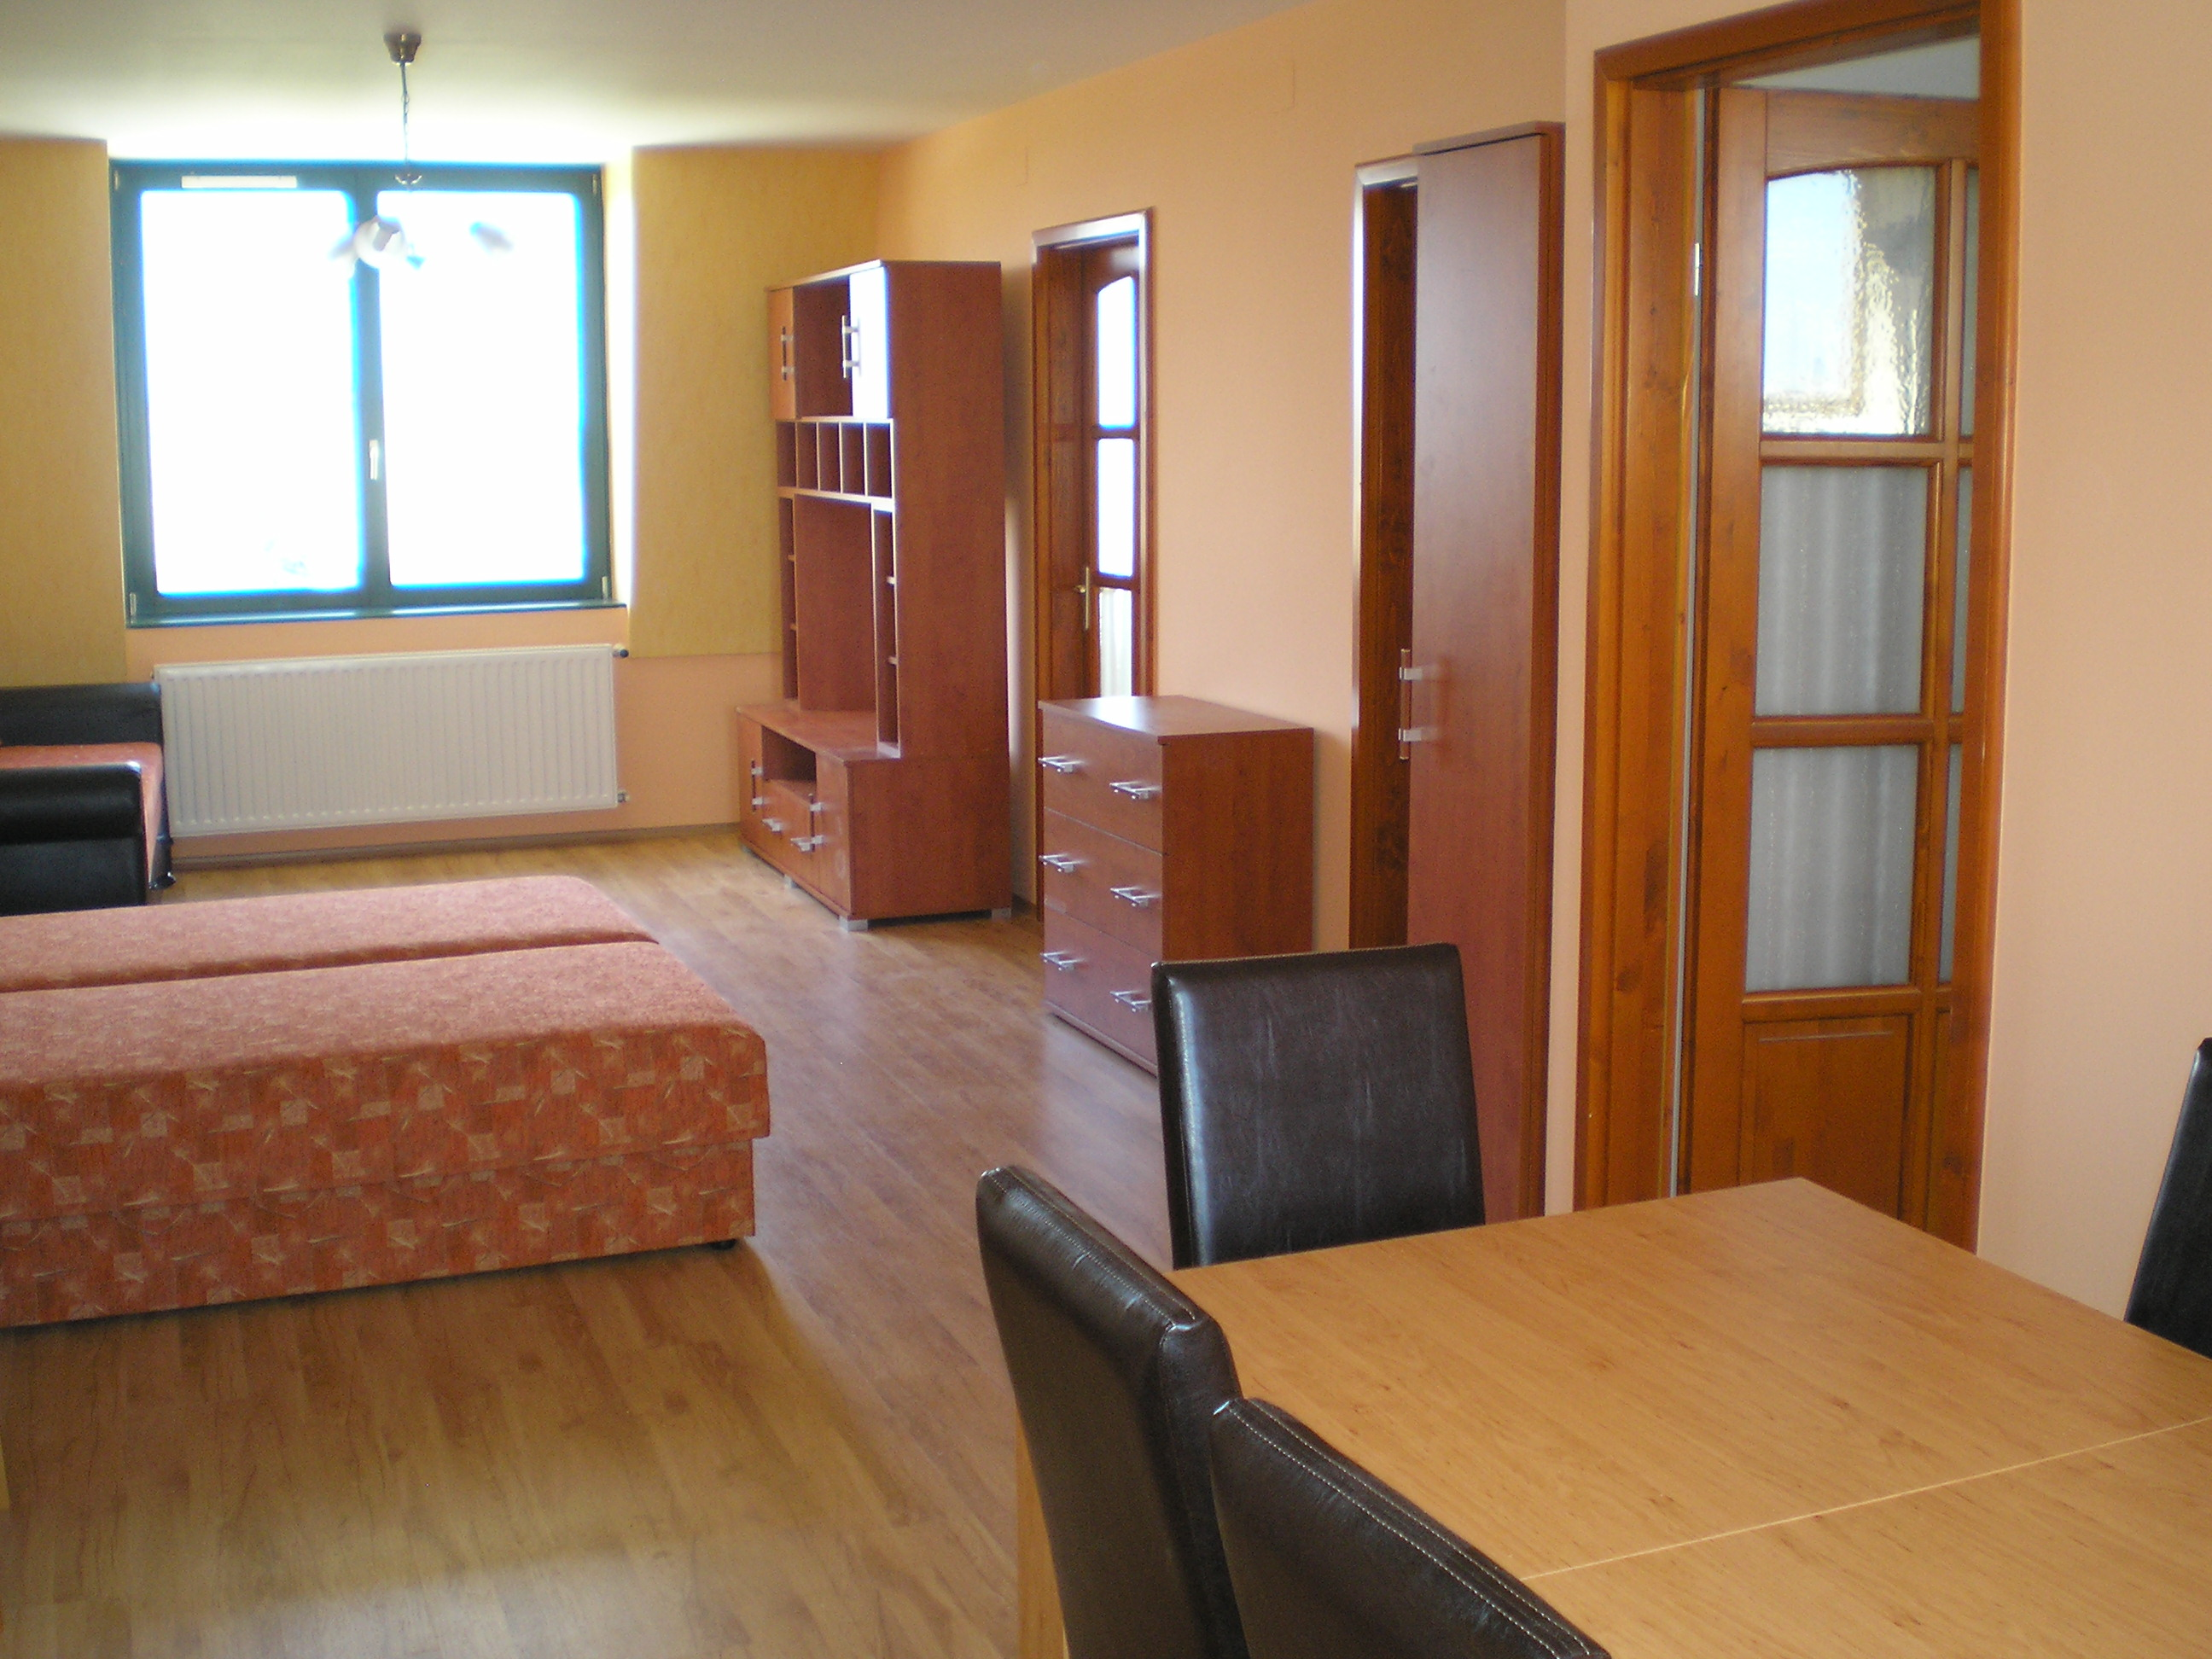 Panorms family 6 fs apartman 3 hltrrel (ptgyazhat) - Nappali